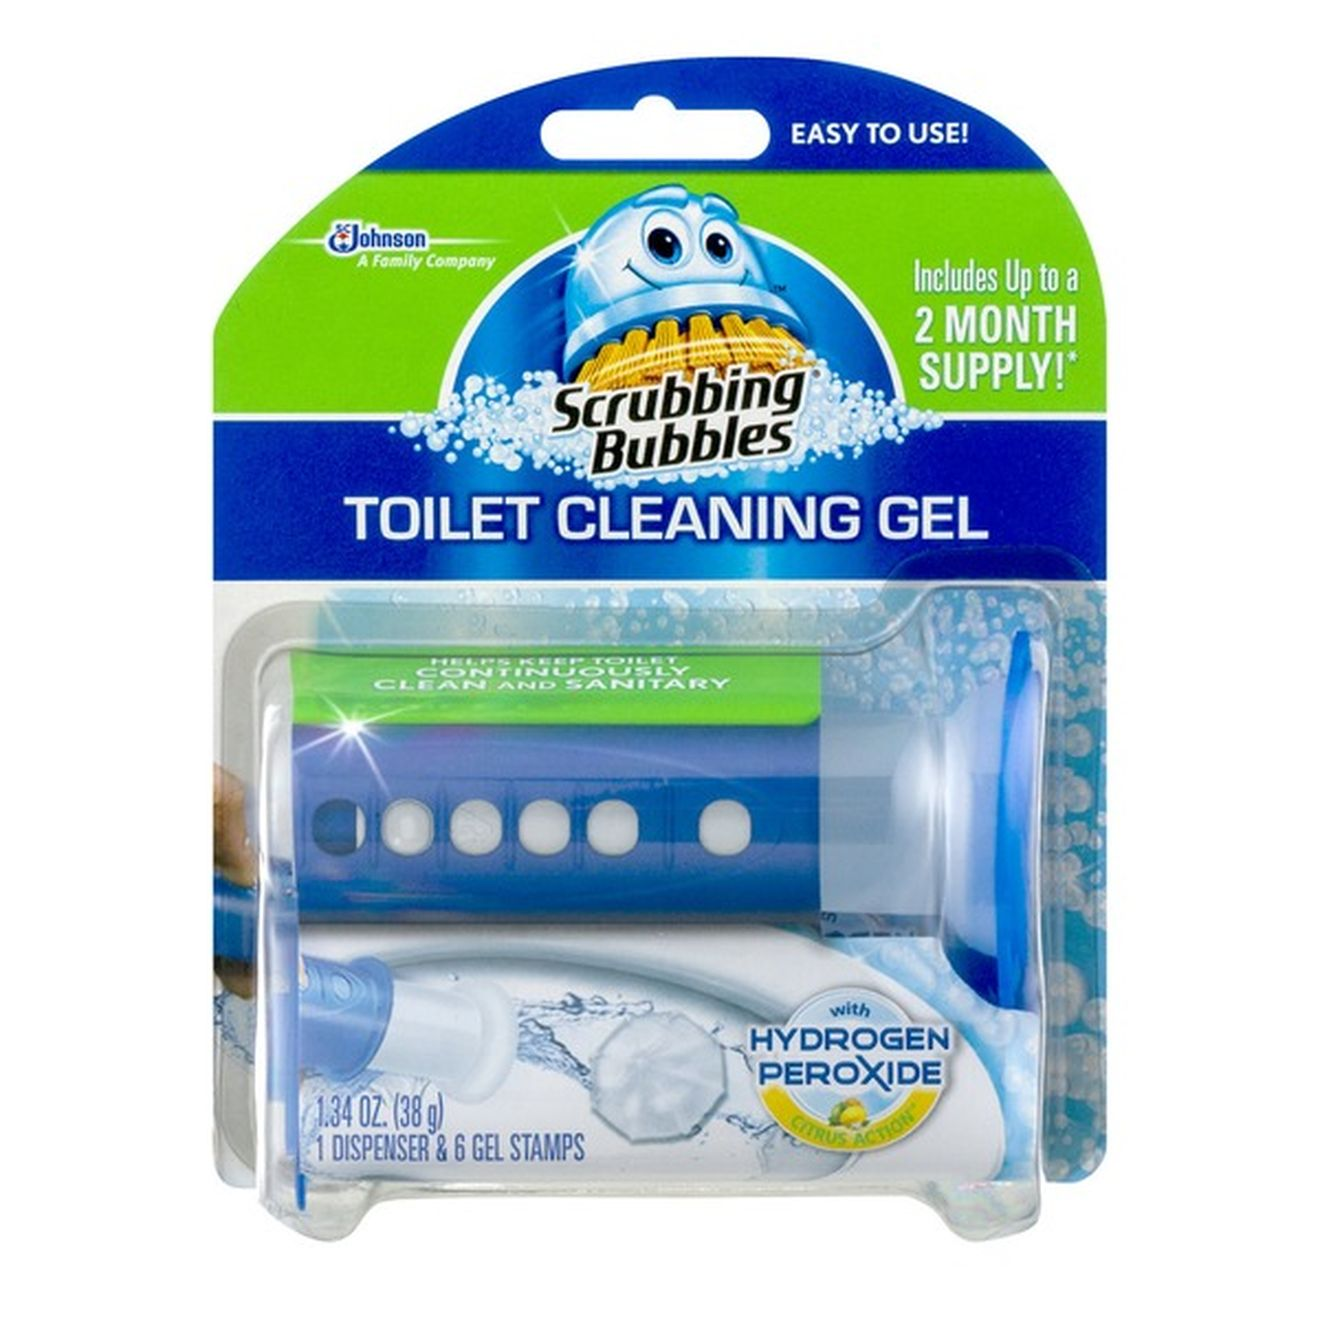 Tops Markets: Scrubbing Bubbles Toilet Gel 6 count only $1 this week!